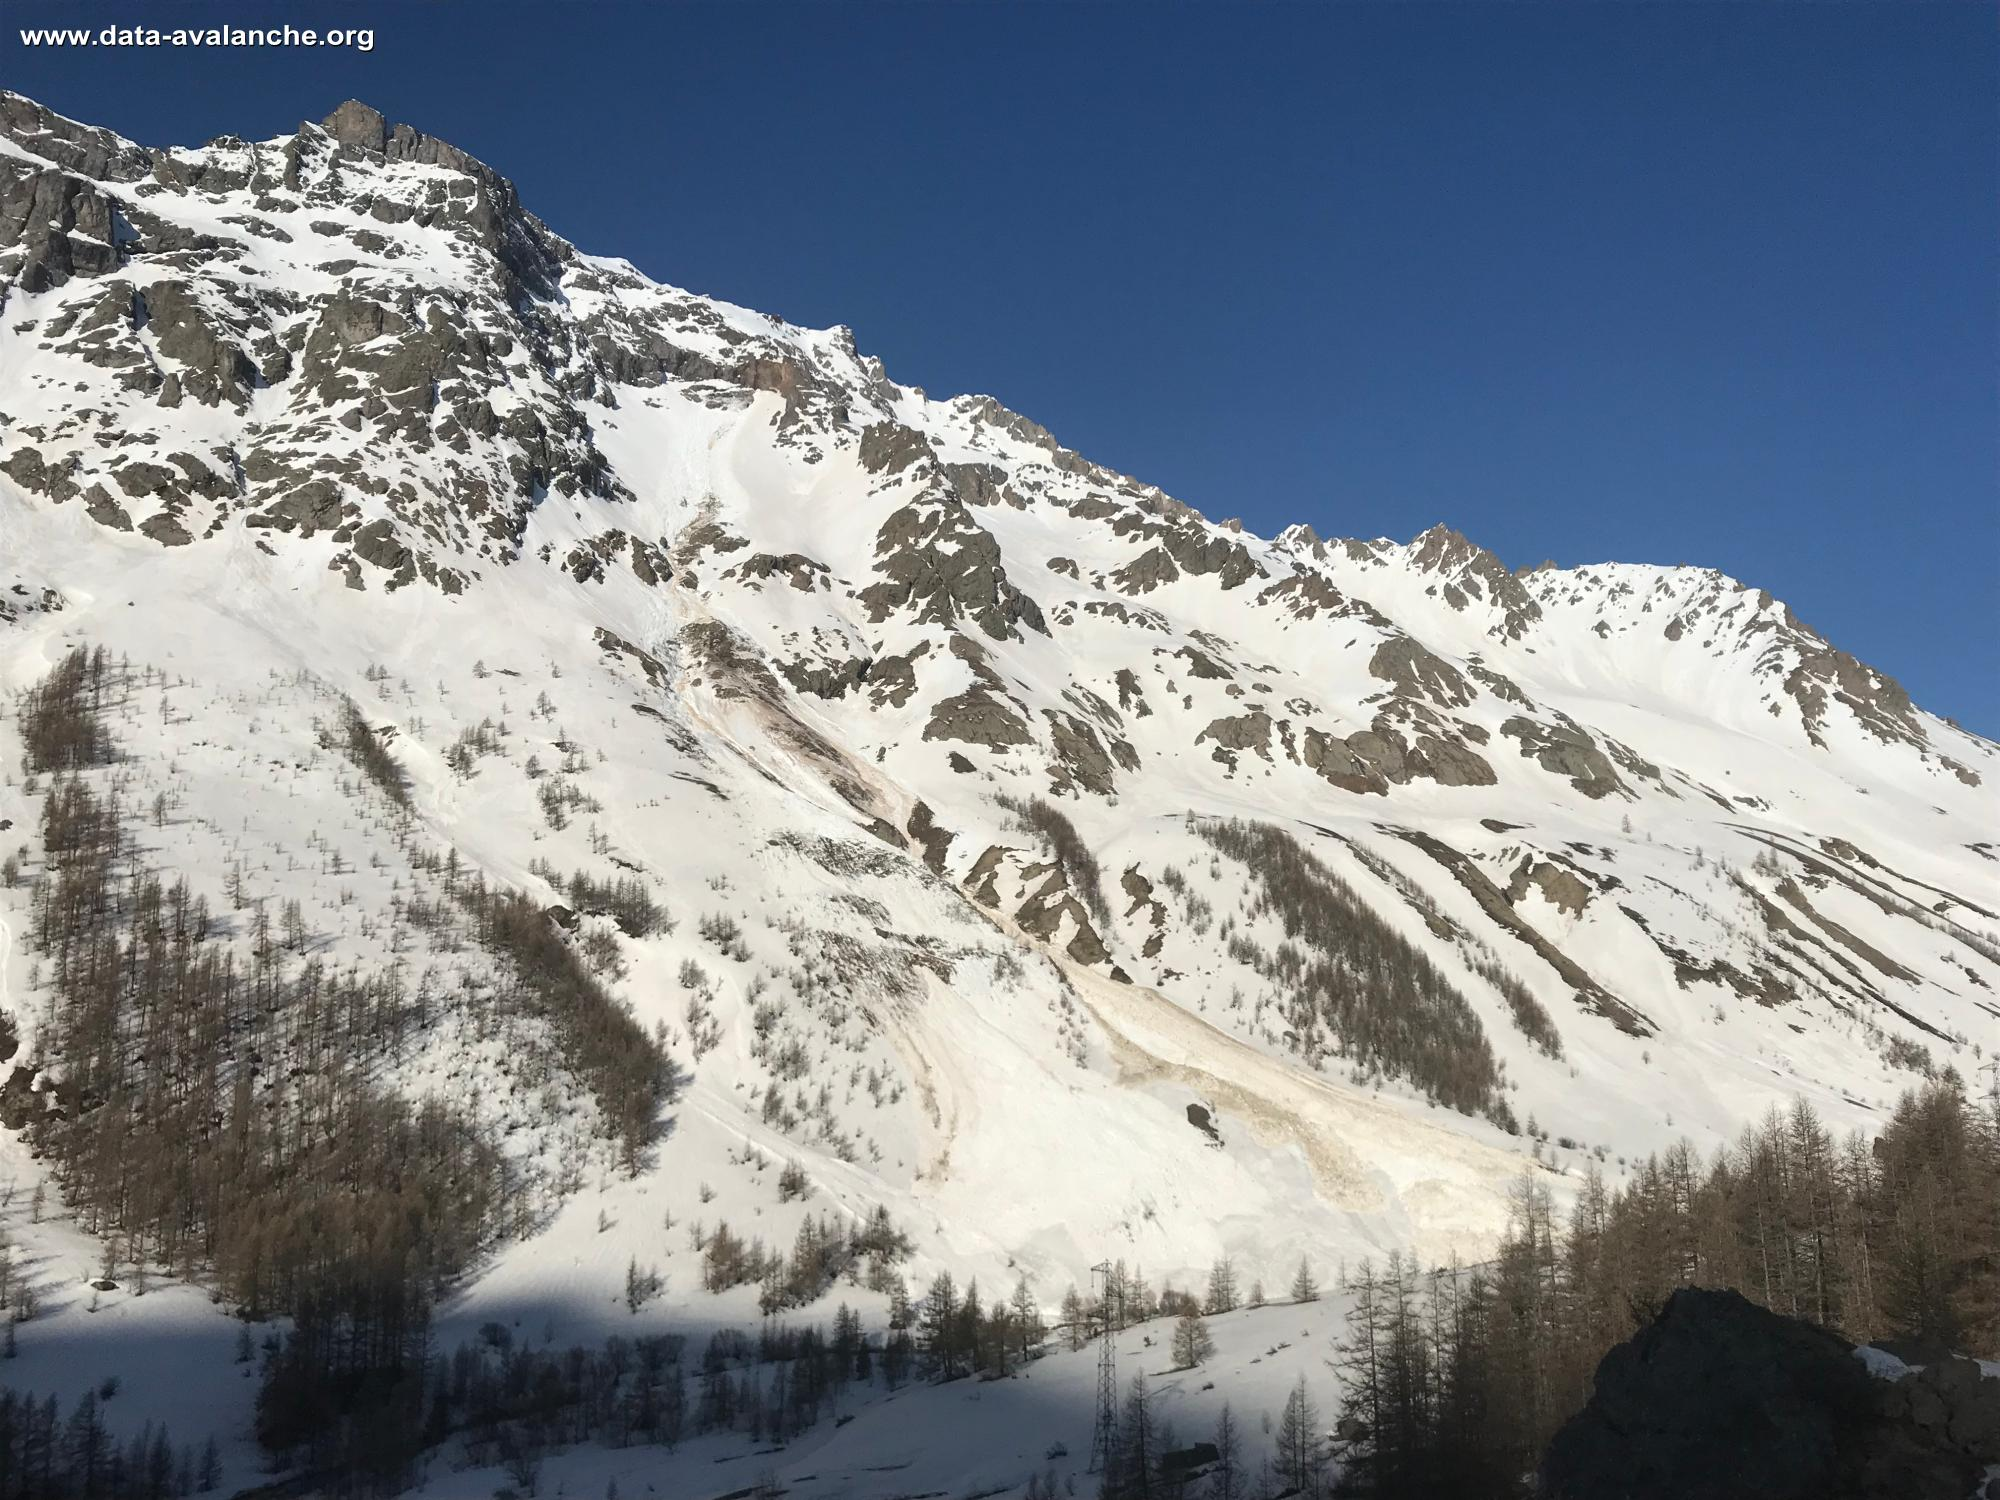 Avalanche Oisans, secteur Pic de Combeynot - Photo 1